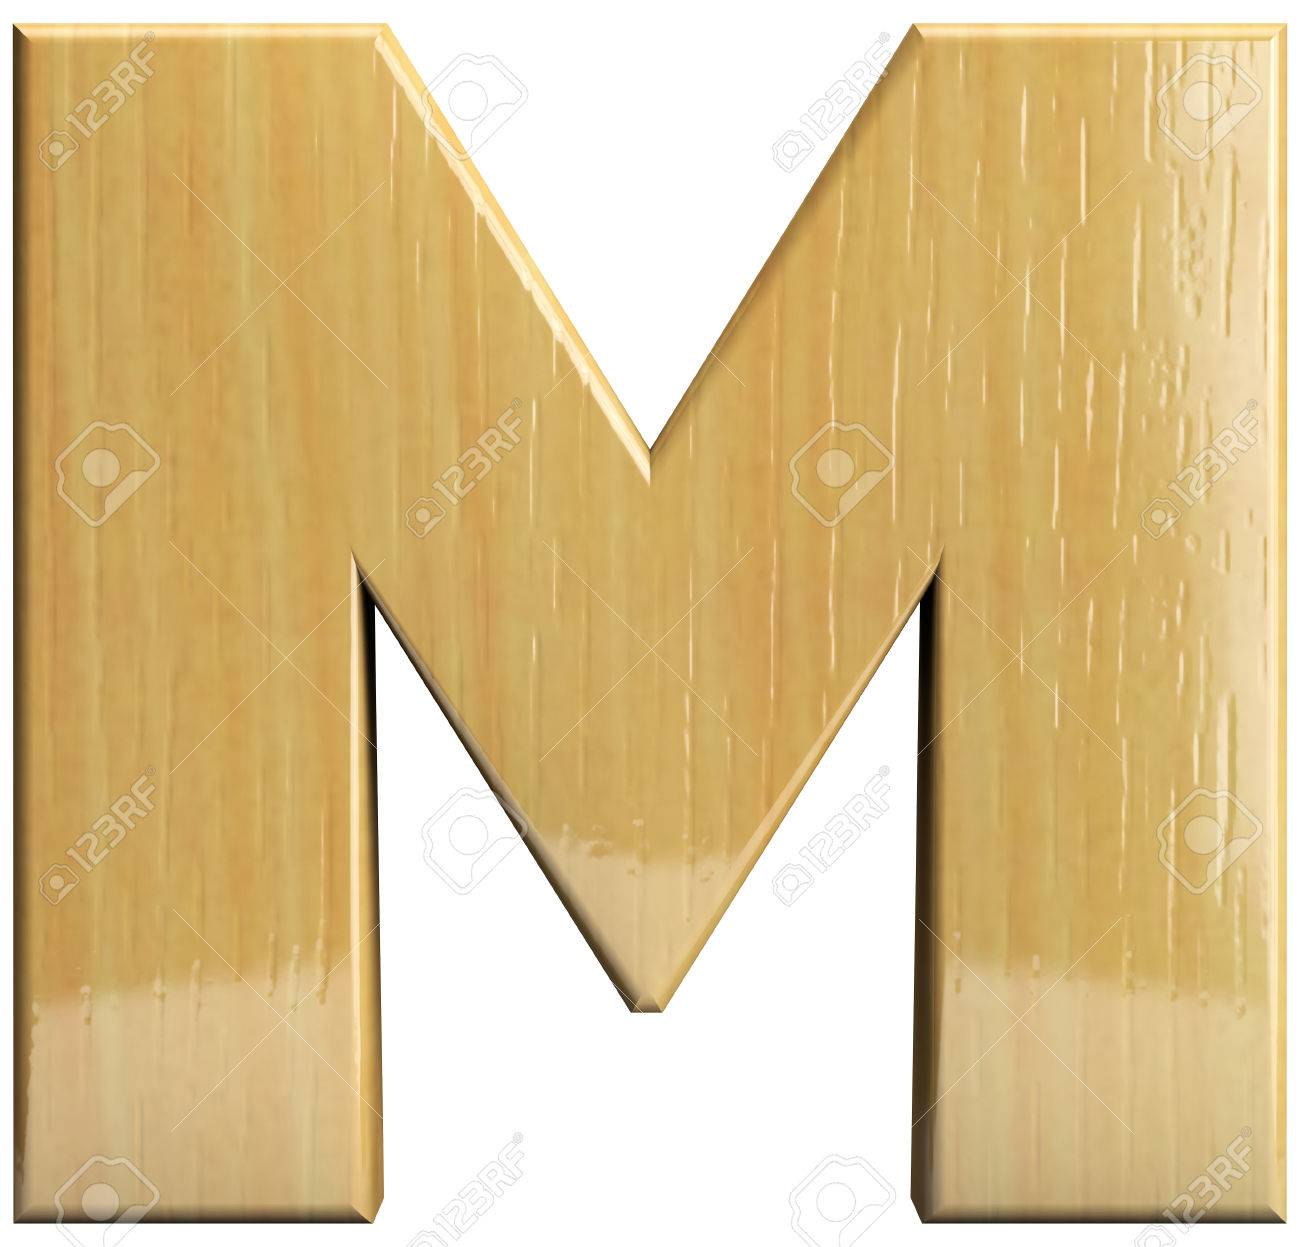 stock photo wooden letter m wood character isolated on white